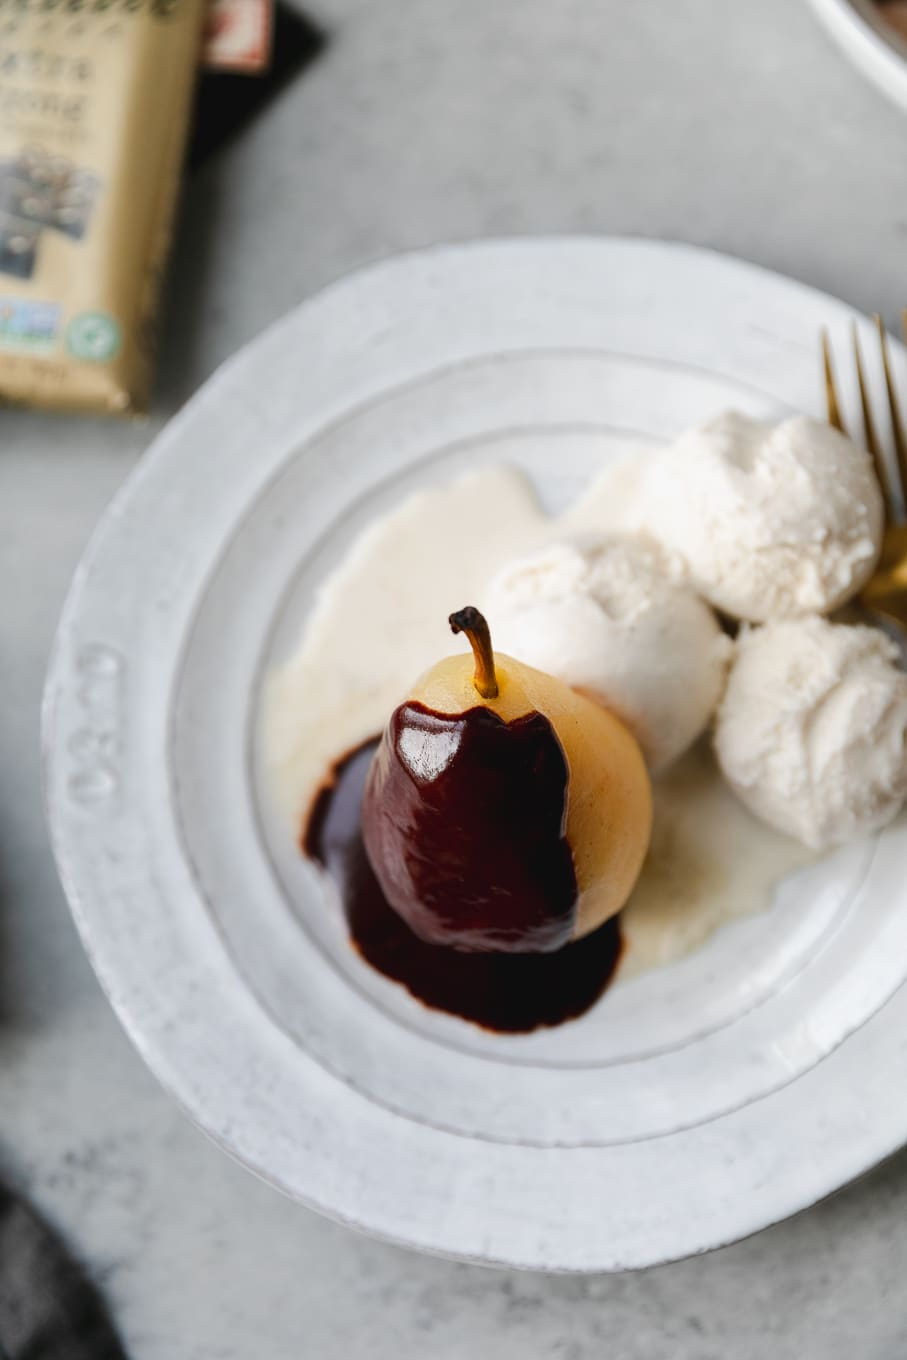 Overhead shot of a poached pear covered in chocolate fudge sauce and ice cream on the side on a white plate with a gold fork